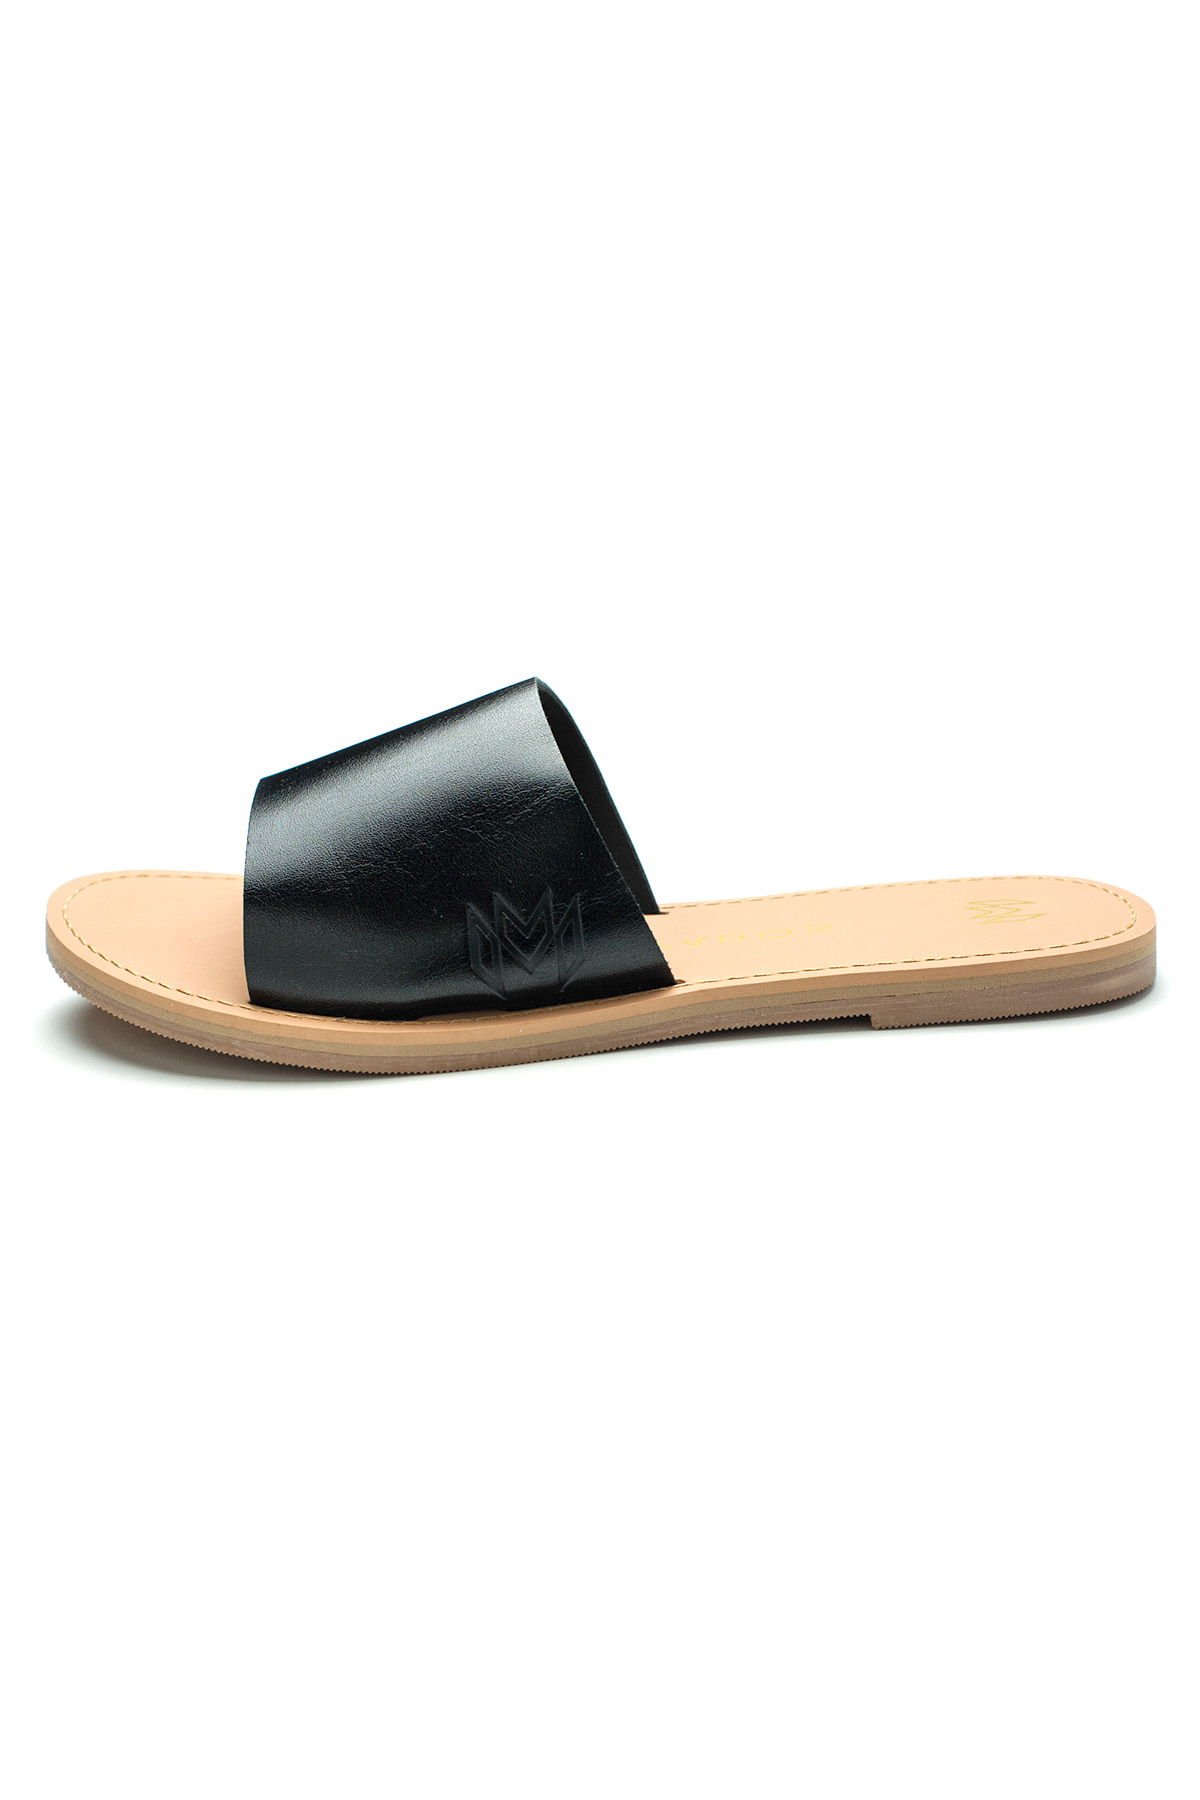 Taylor Leather Slides - Midnight 2